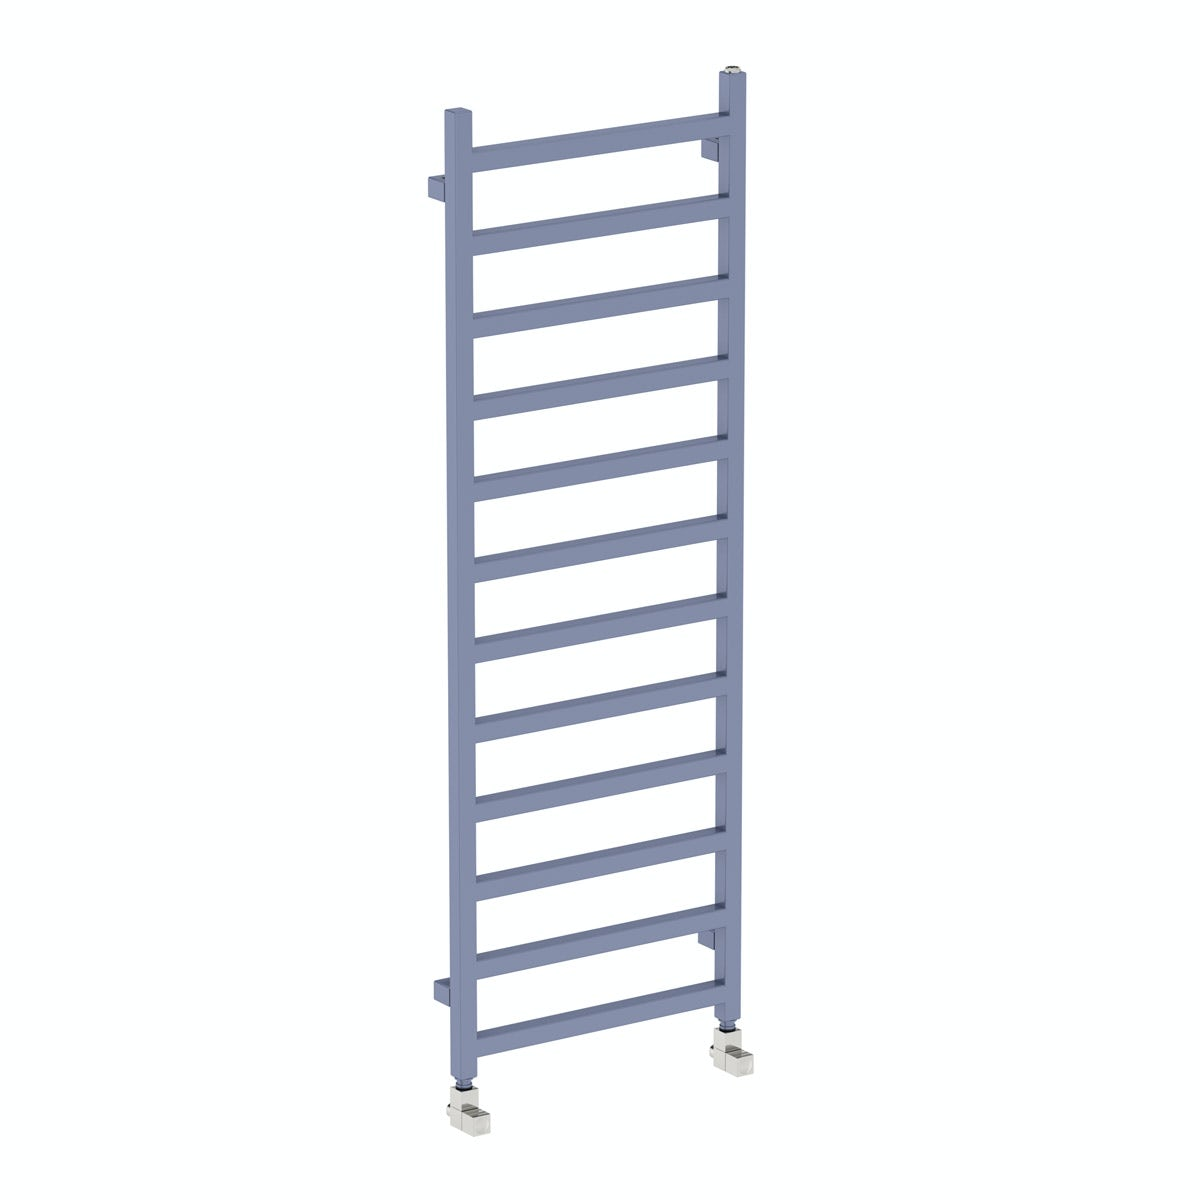 Terma Simple pigeon blue heated towel rail 1440 x 500